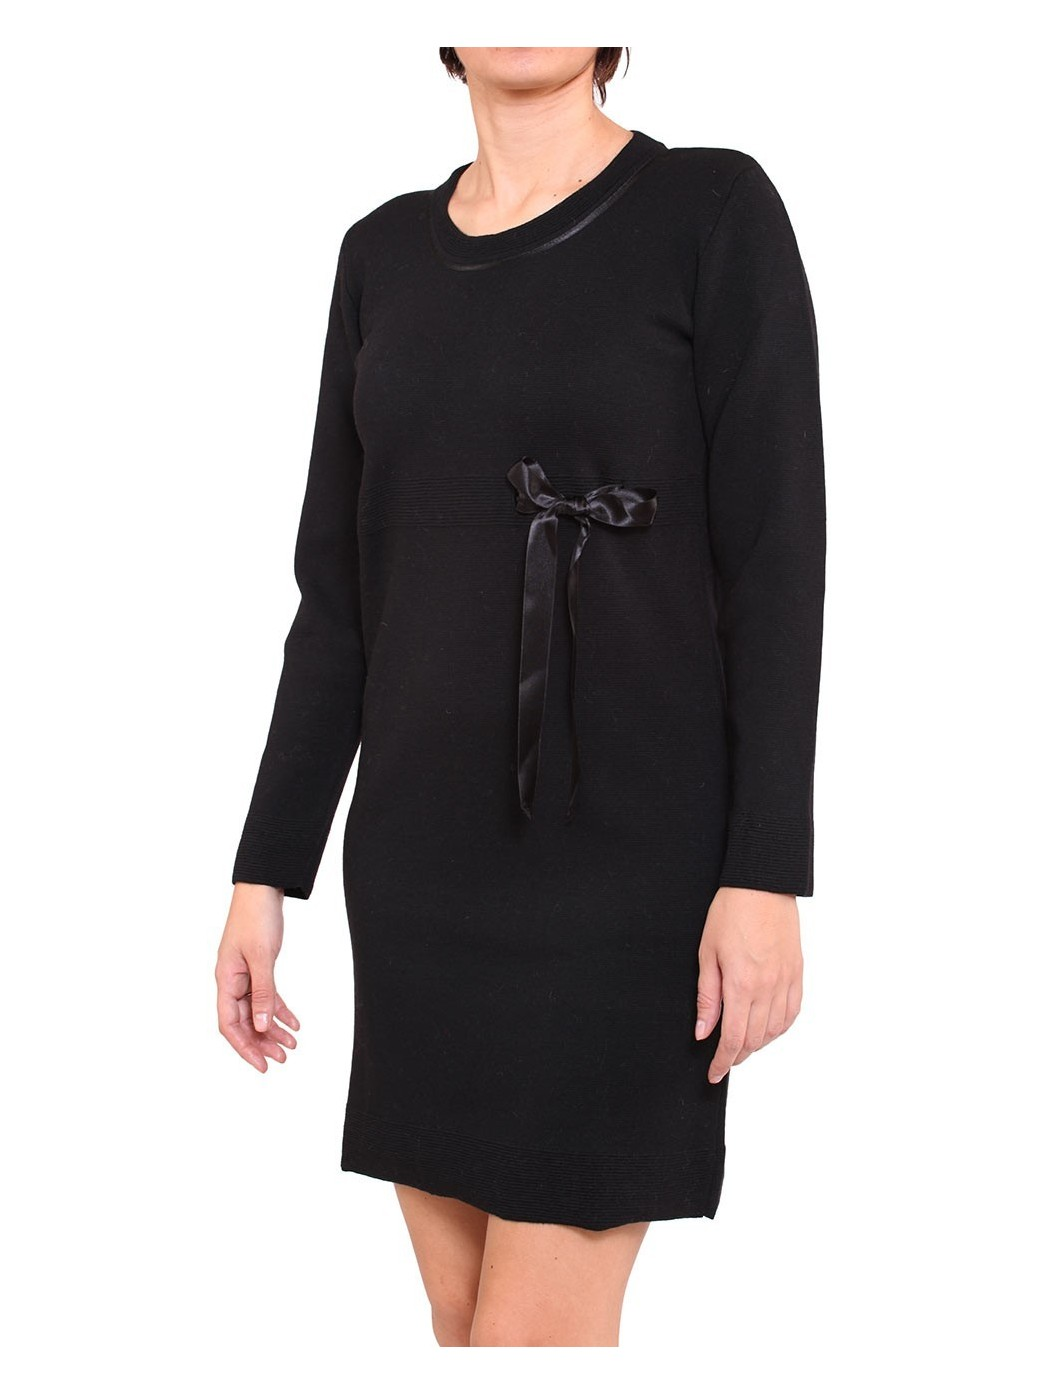 Musetti wool dress